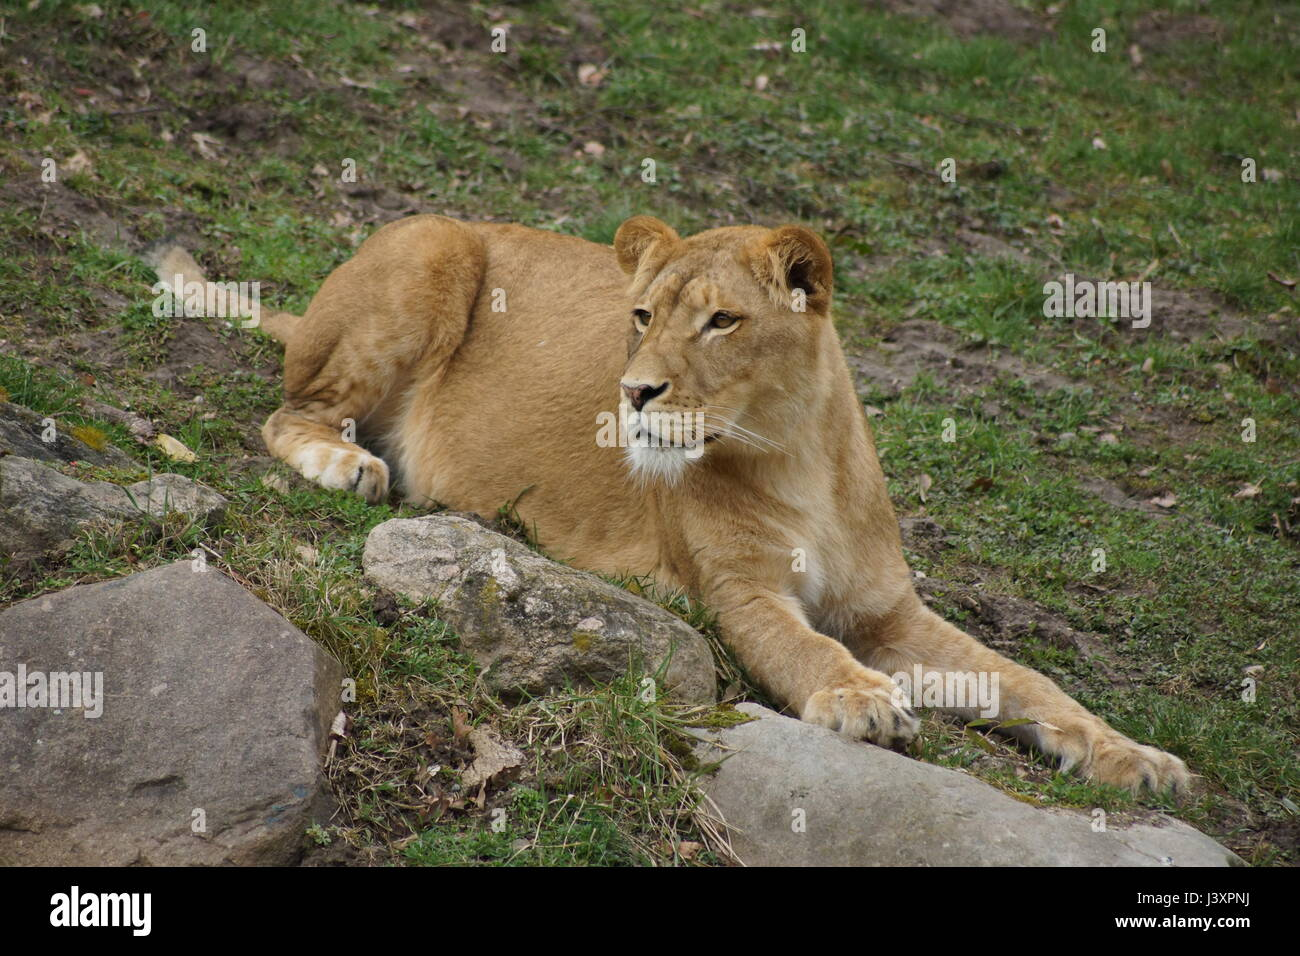 Wild lion in the zoo Stock Photo